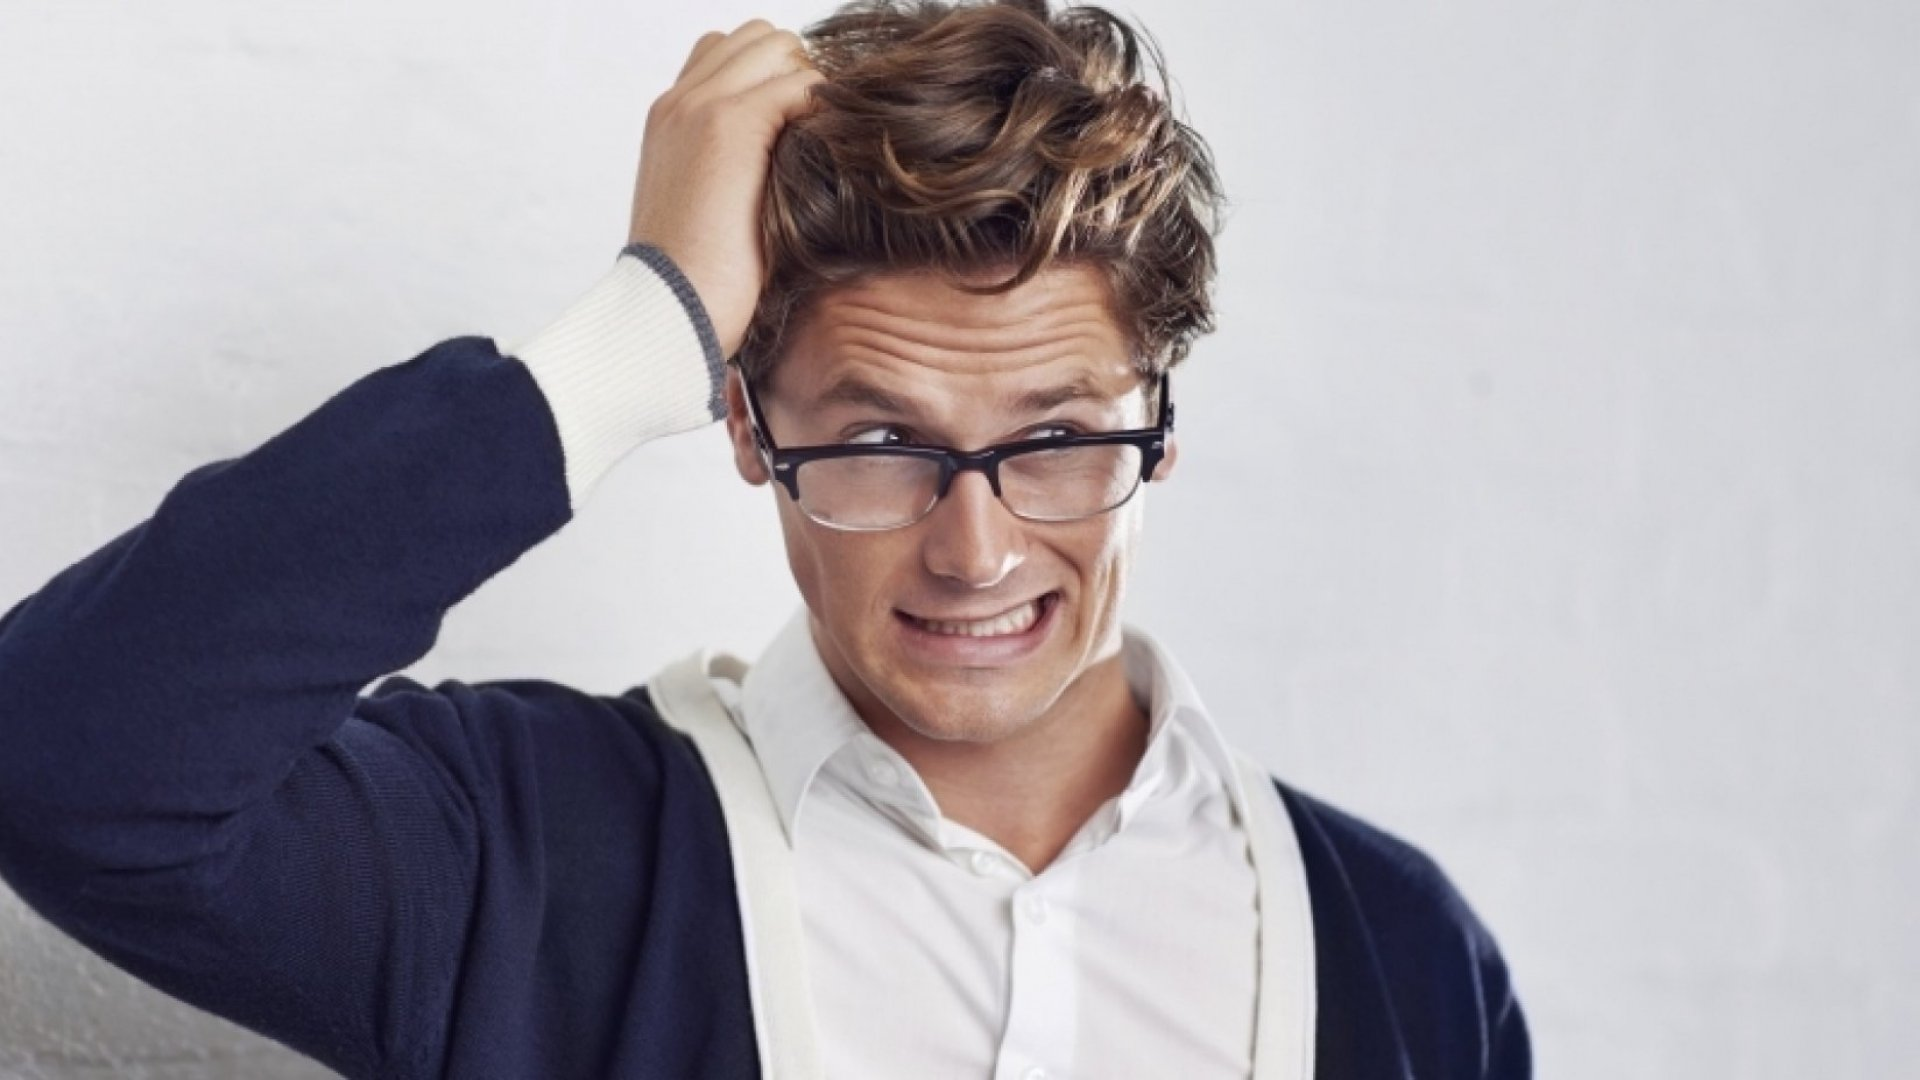 4 Things Millennials Absolutely Hate Hearing From Their Bosses